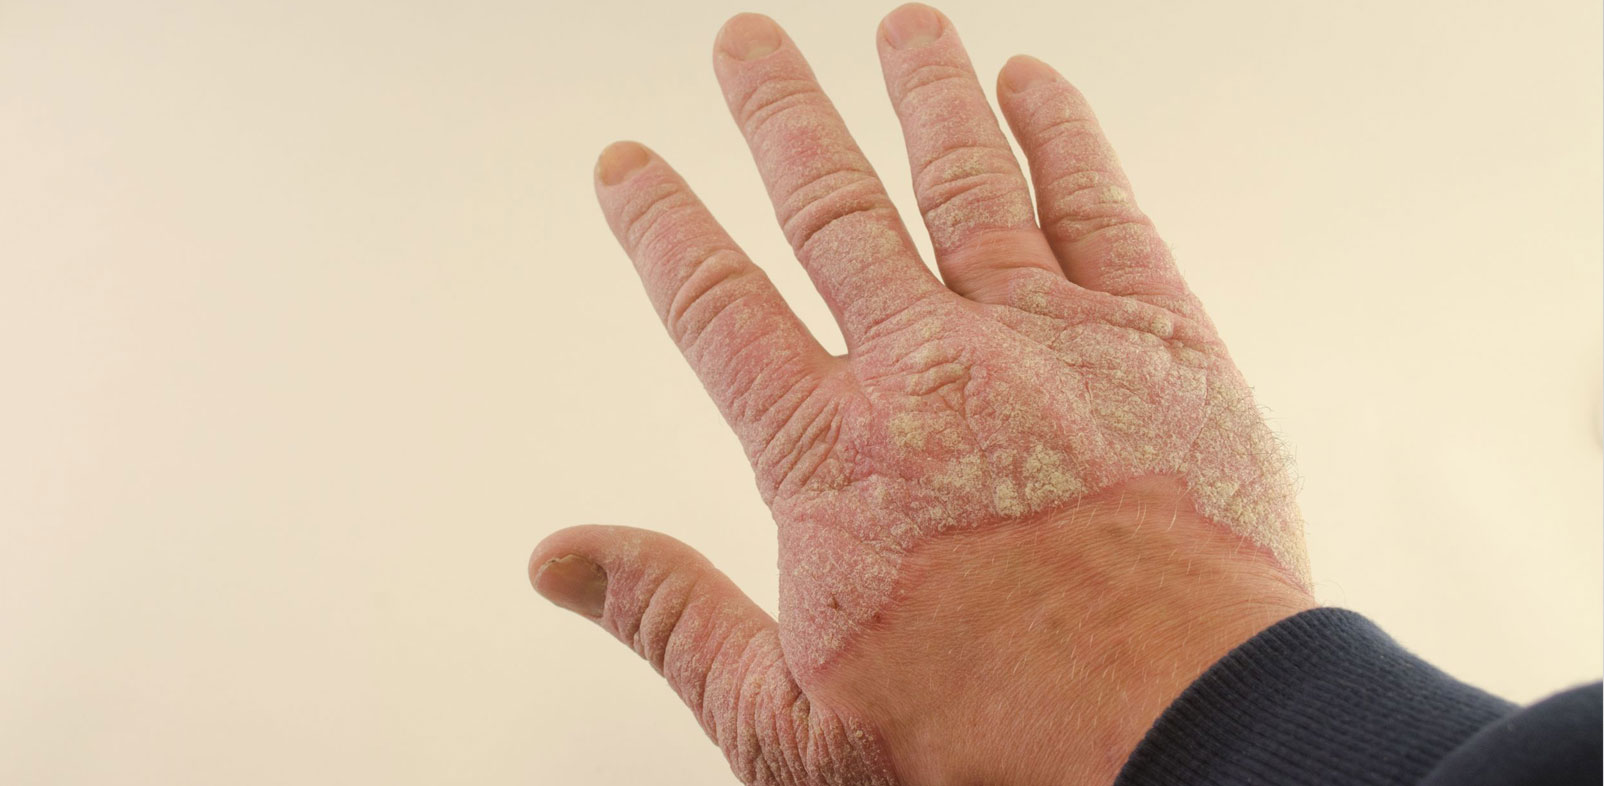 Psoriasis is a Deadly Skin Disease